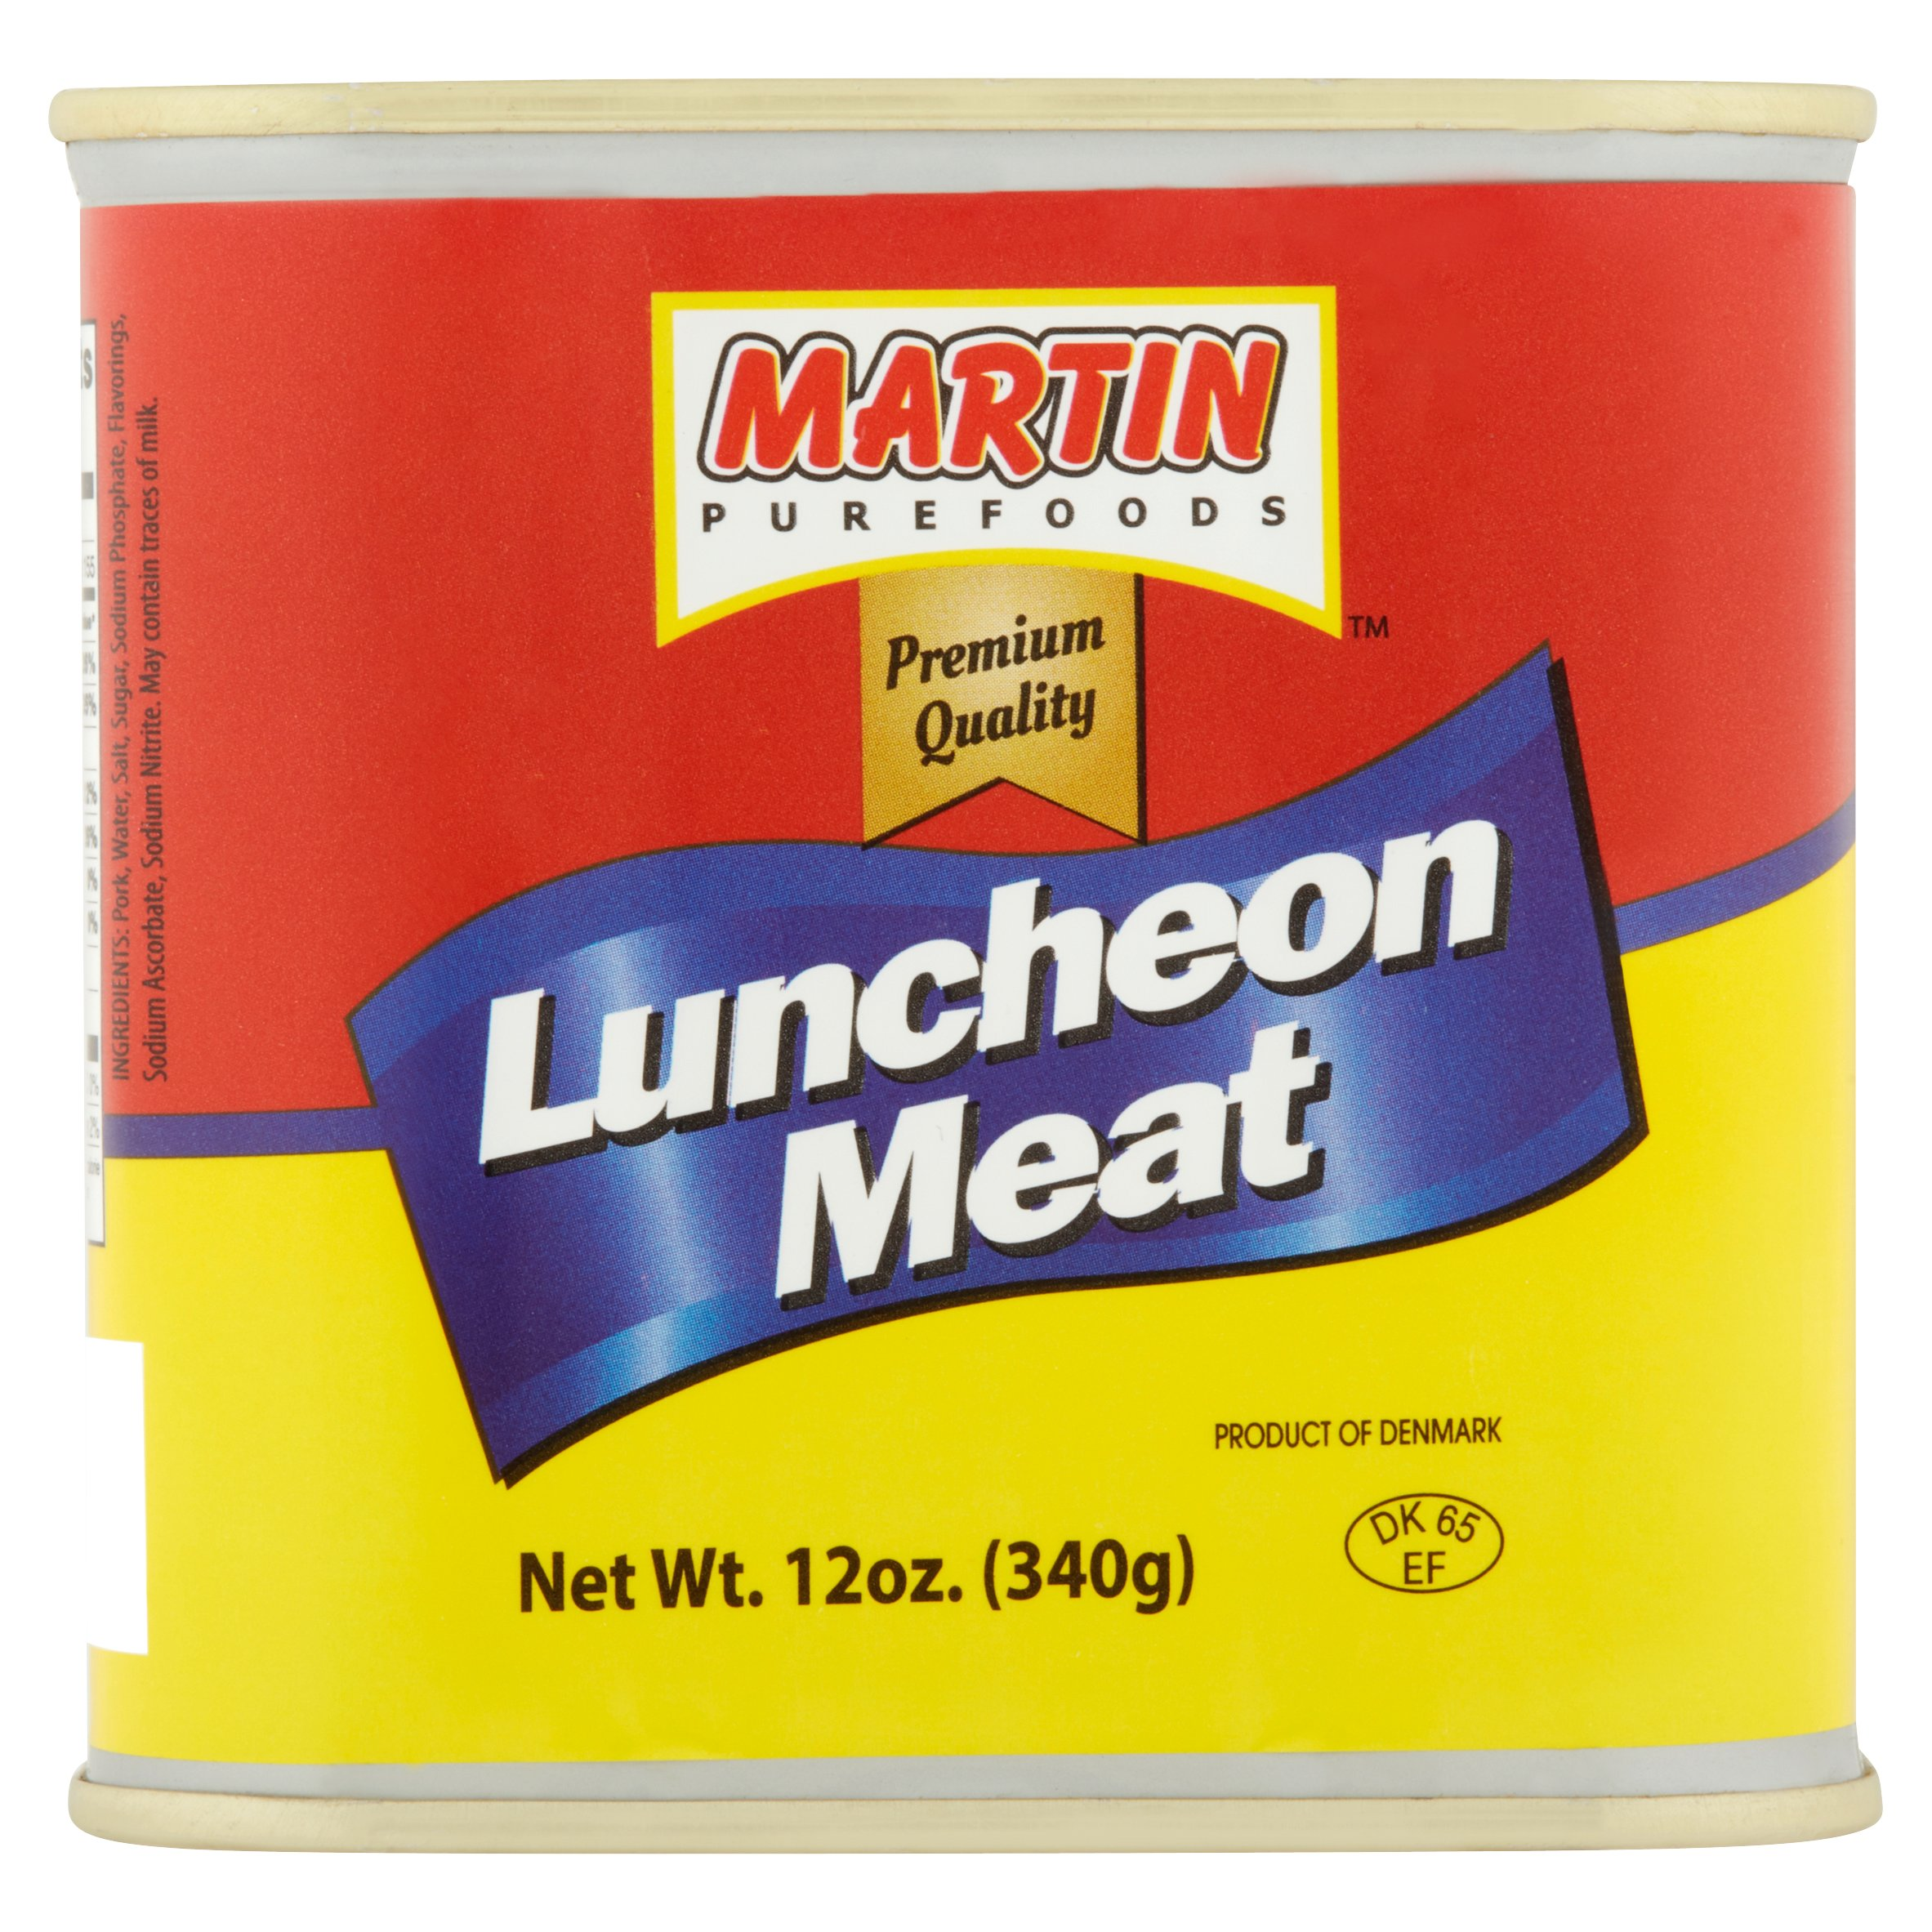 Martin Purefoods Luncheon Meat, 12 oz by Martin Purefoods Corp.